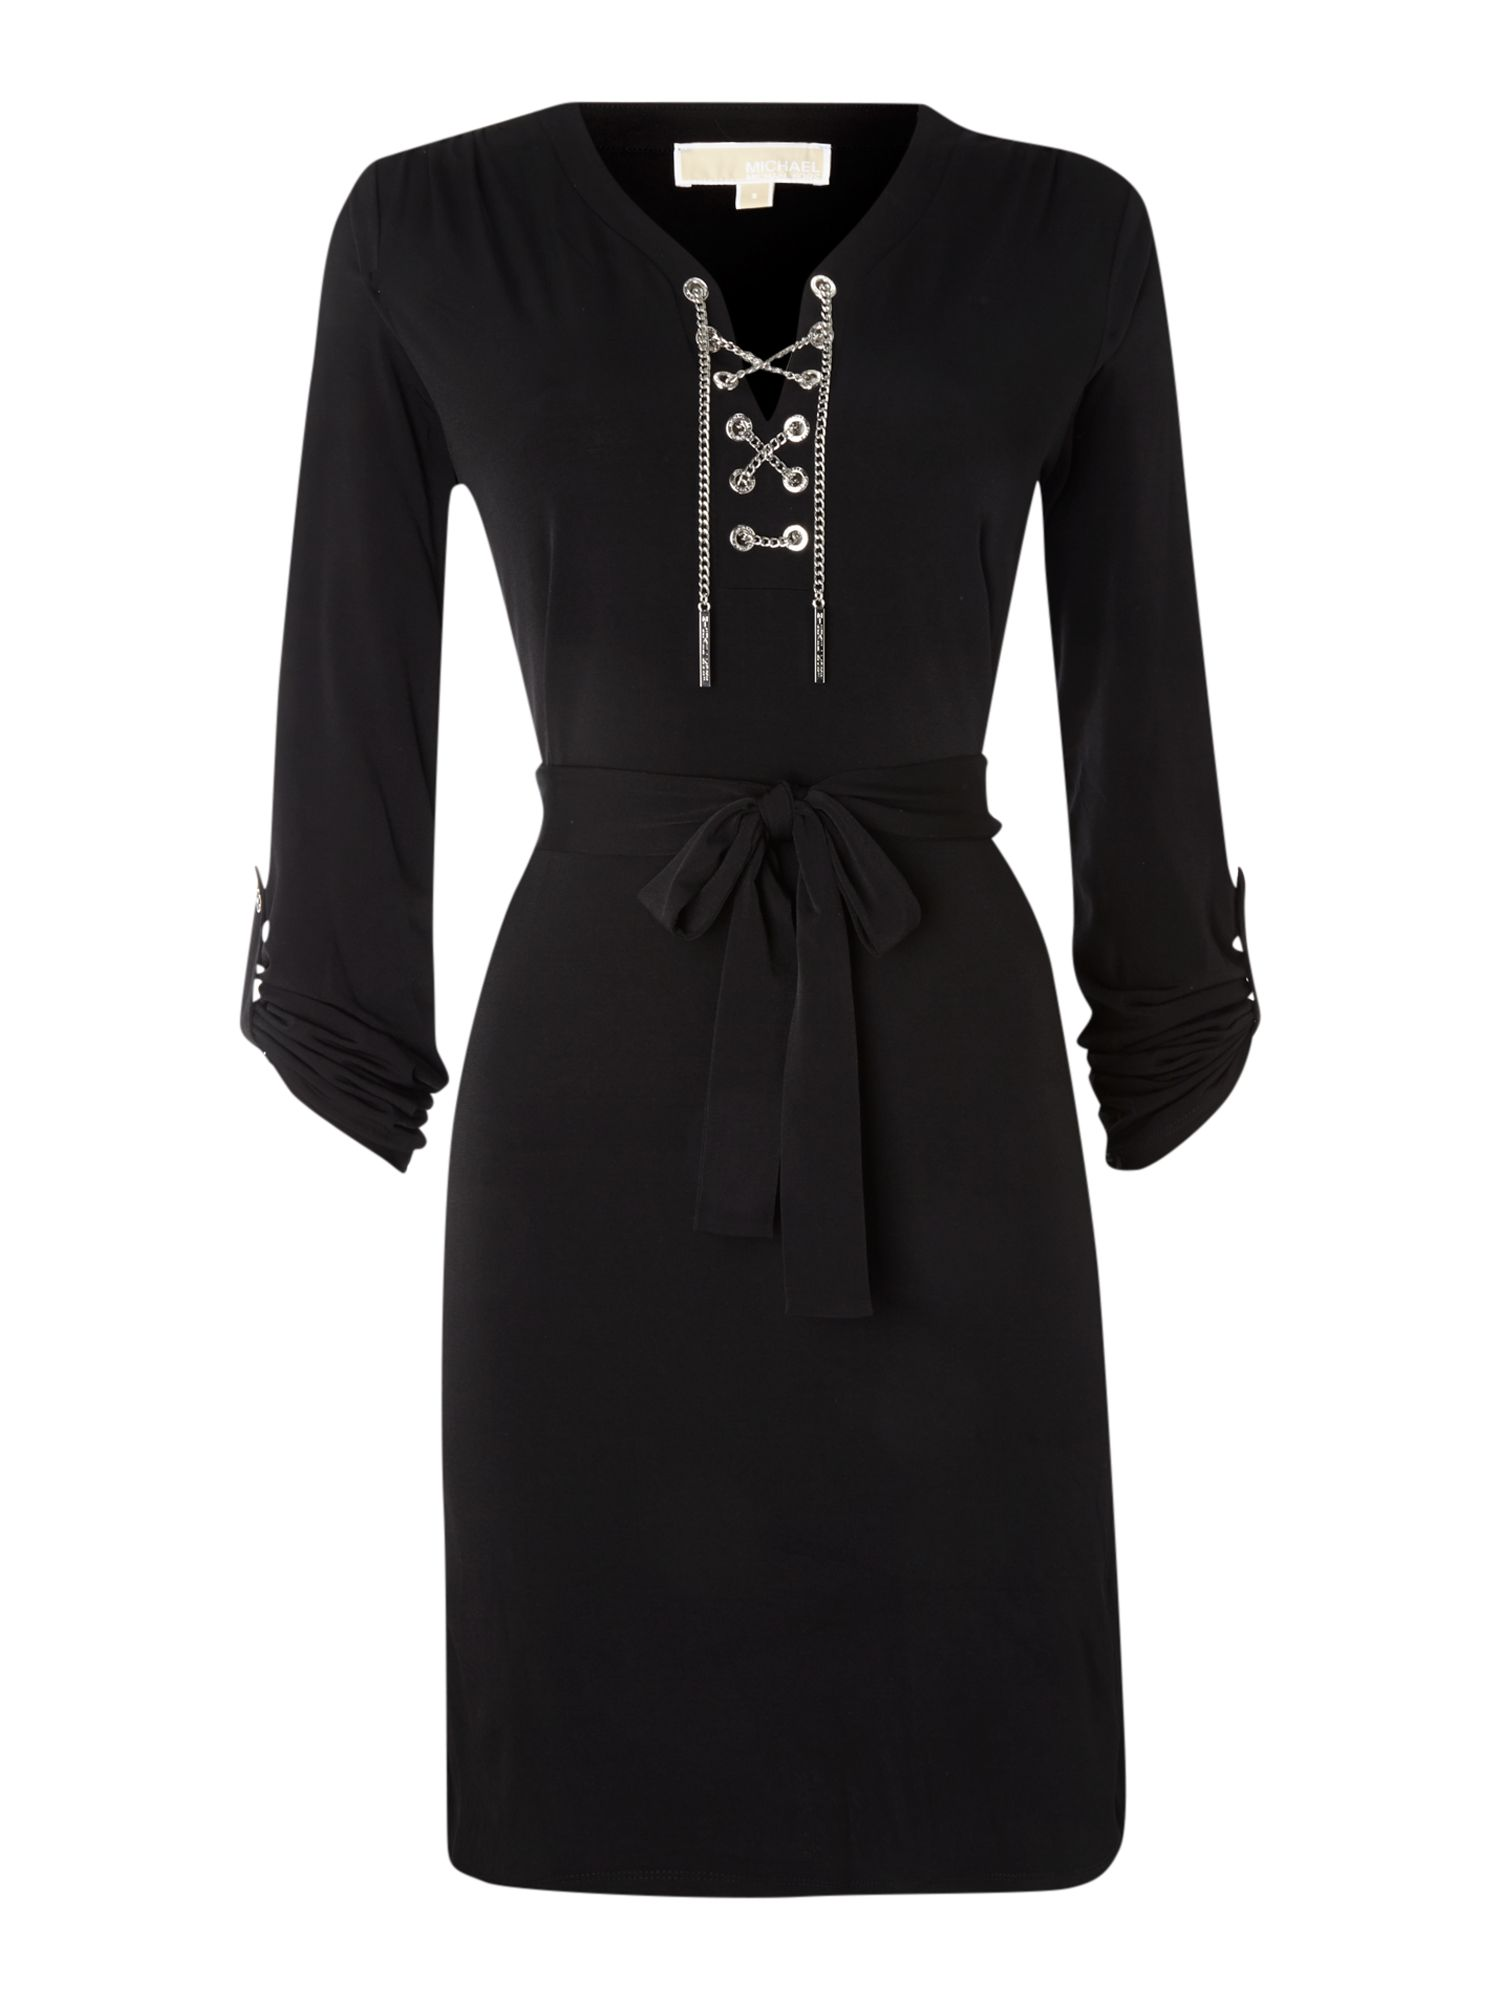 Long sleeved chain tie neck dress